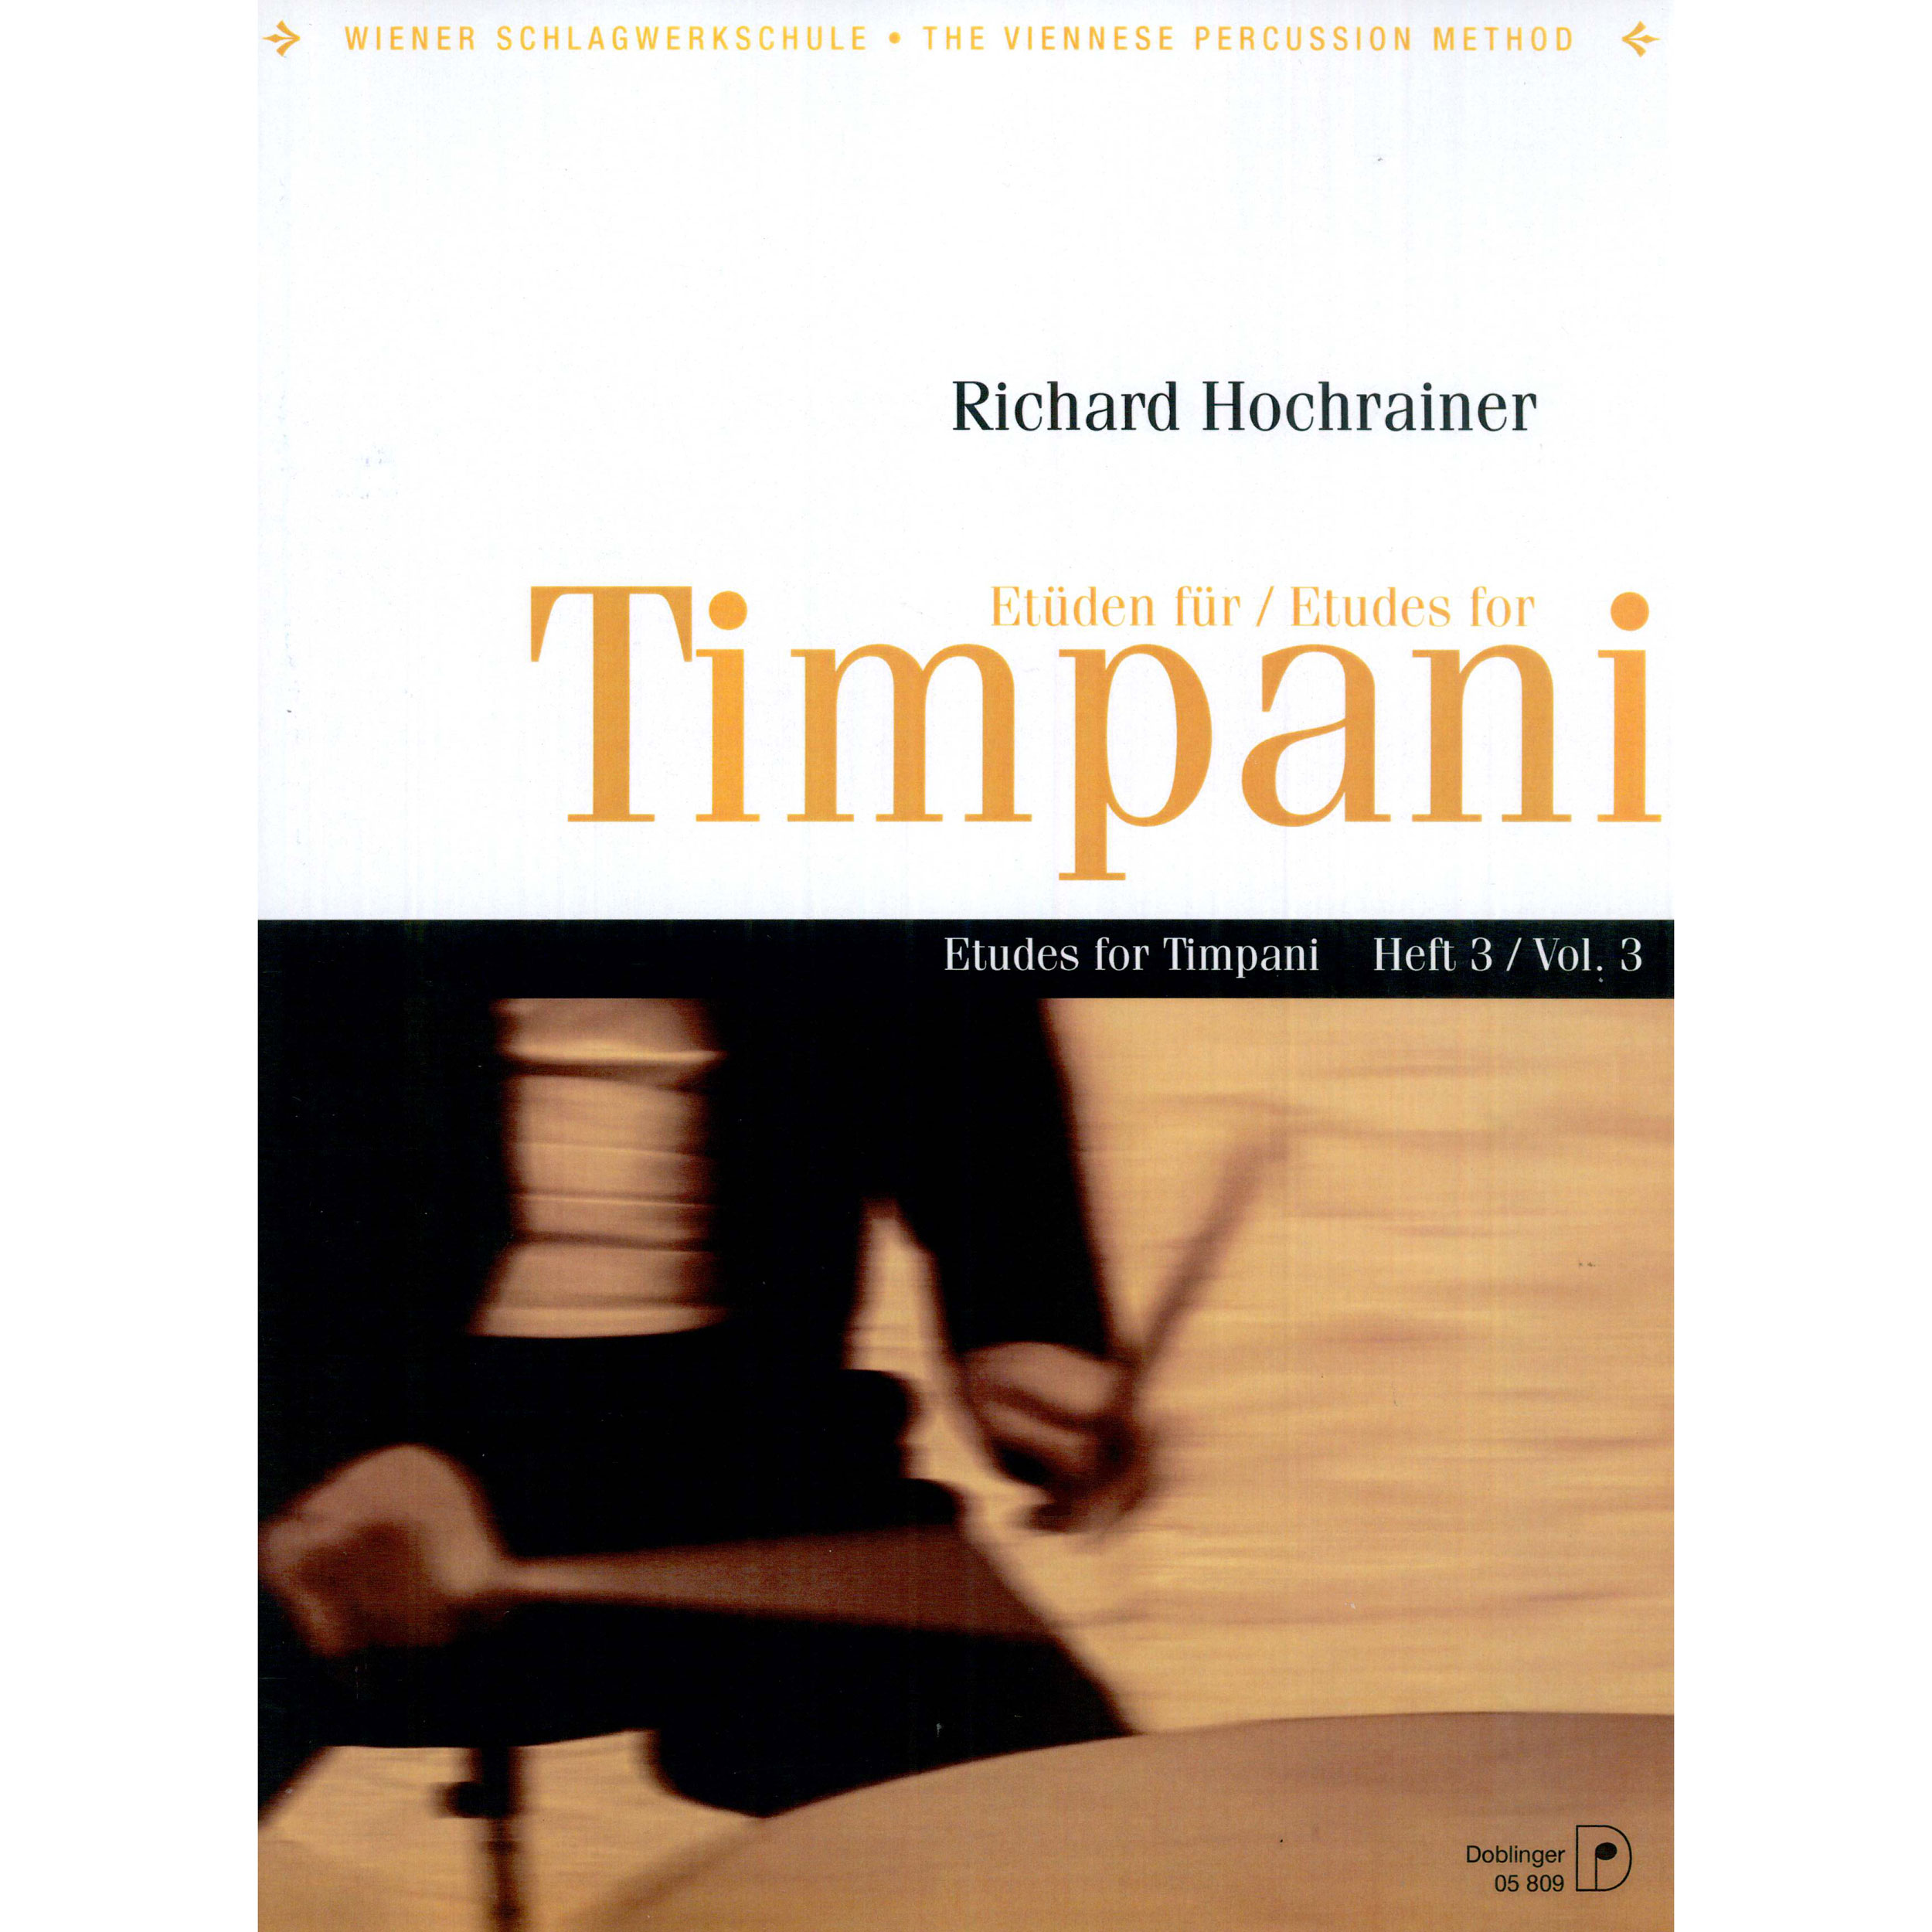 Etuden fur Timpani (Etudes for Timpani) Vol. 3 by Richard Hochrainer